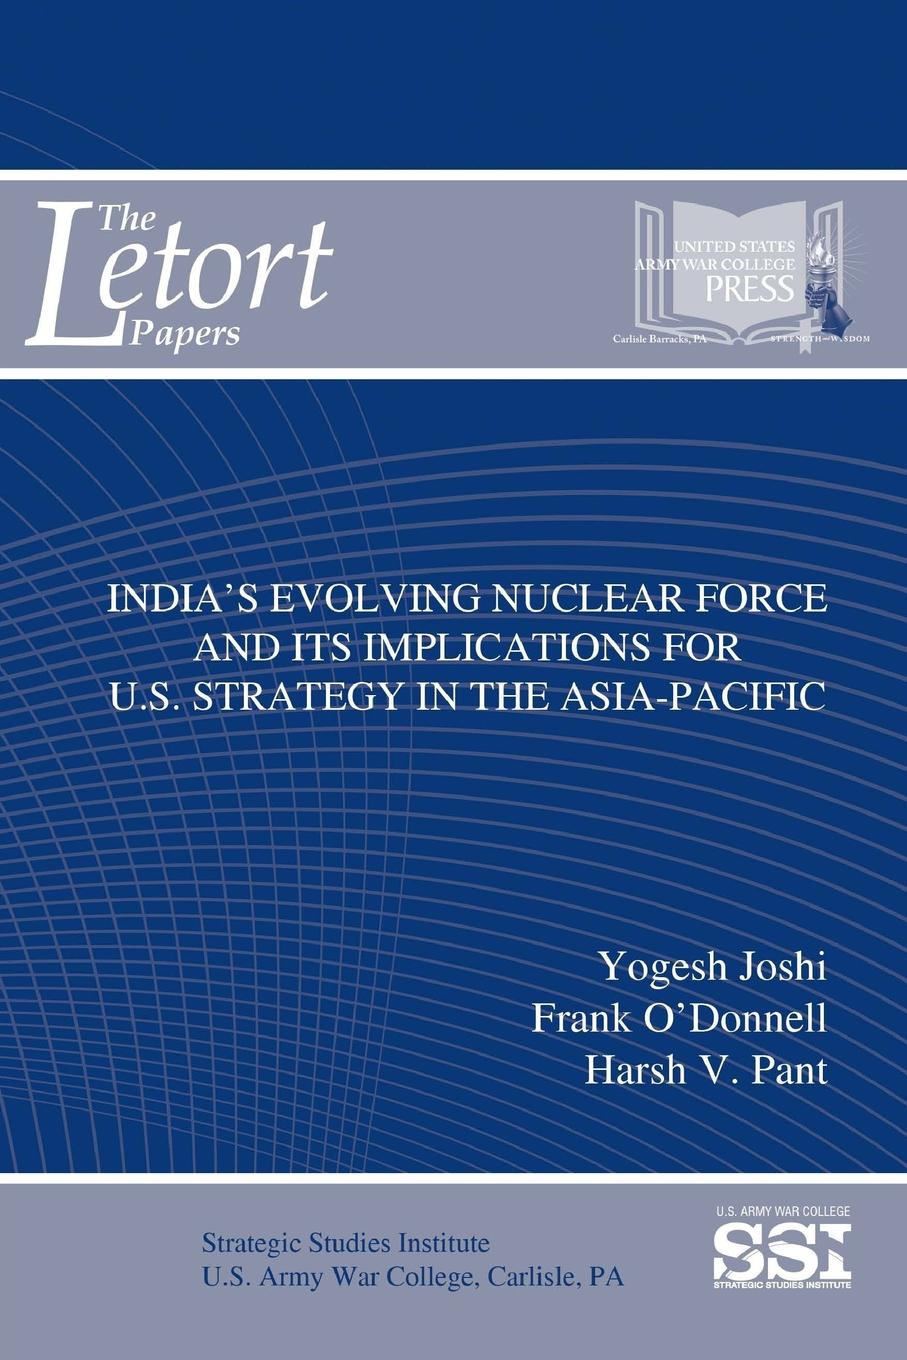 Strategic Studies Institute (SSI), Yogesh Joshi, Frank O'Donnell India.s Evolving Nuclear Force And Its Implications For U.S. Strategy In The Asia-Pacific denis stein marion preuß nina höhne economical implications of shutdowns of nuclear power in germany